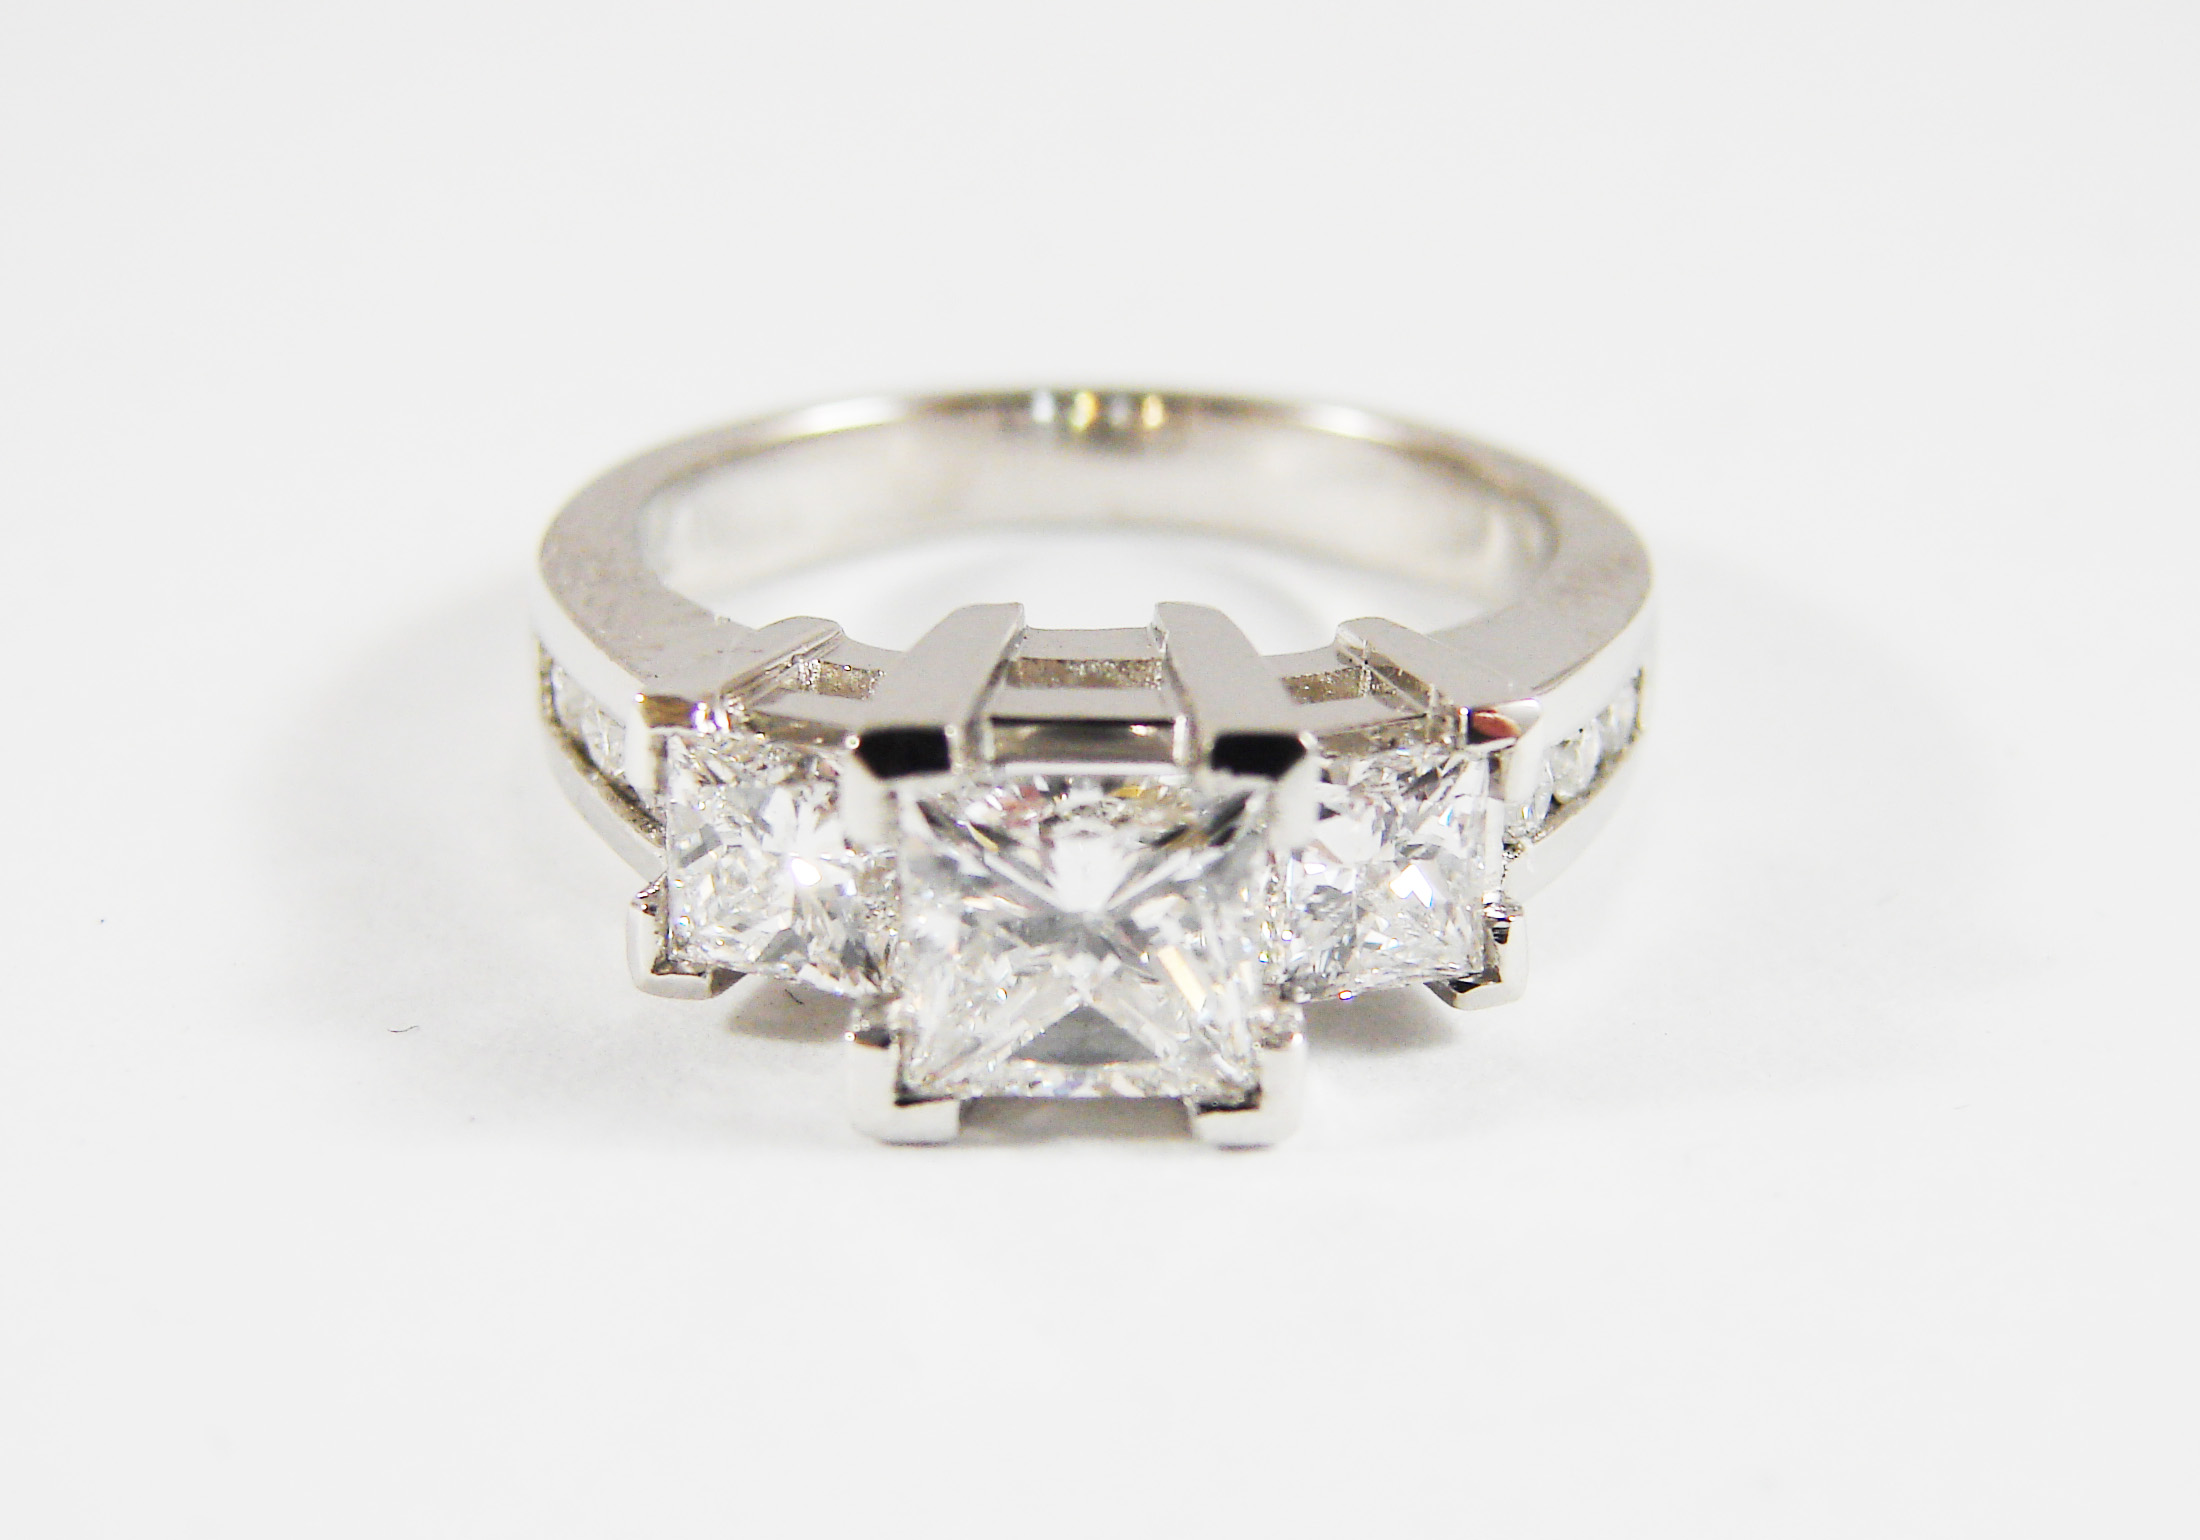 1.00ct princess cut center stone, 1.00tcw diamond side stones, 4 small rounddiamonds on each of the sides on the shank, platinum ring.  Starting at $12,000 for this stone size andVS clarity FG colour  Can be customizable with any stone, size, metal etc.